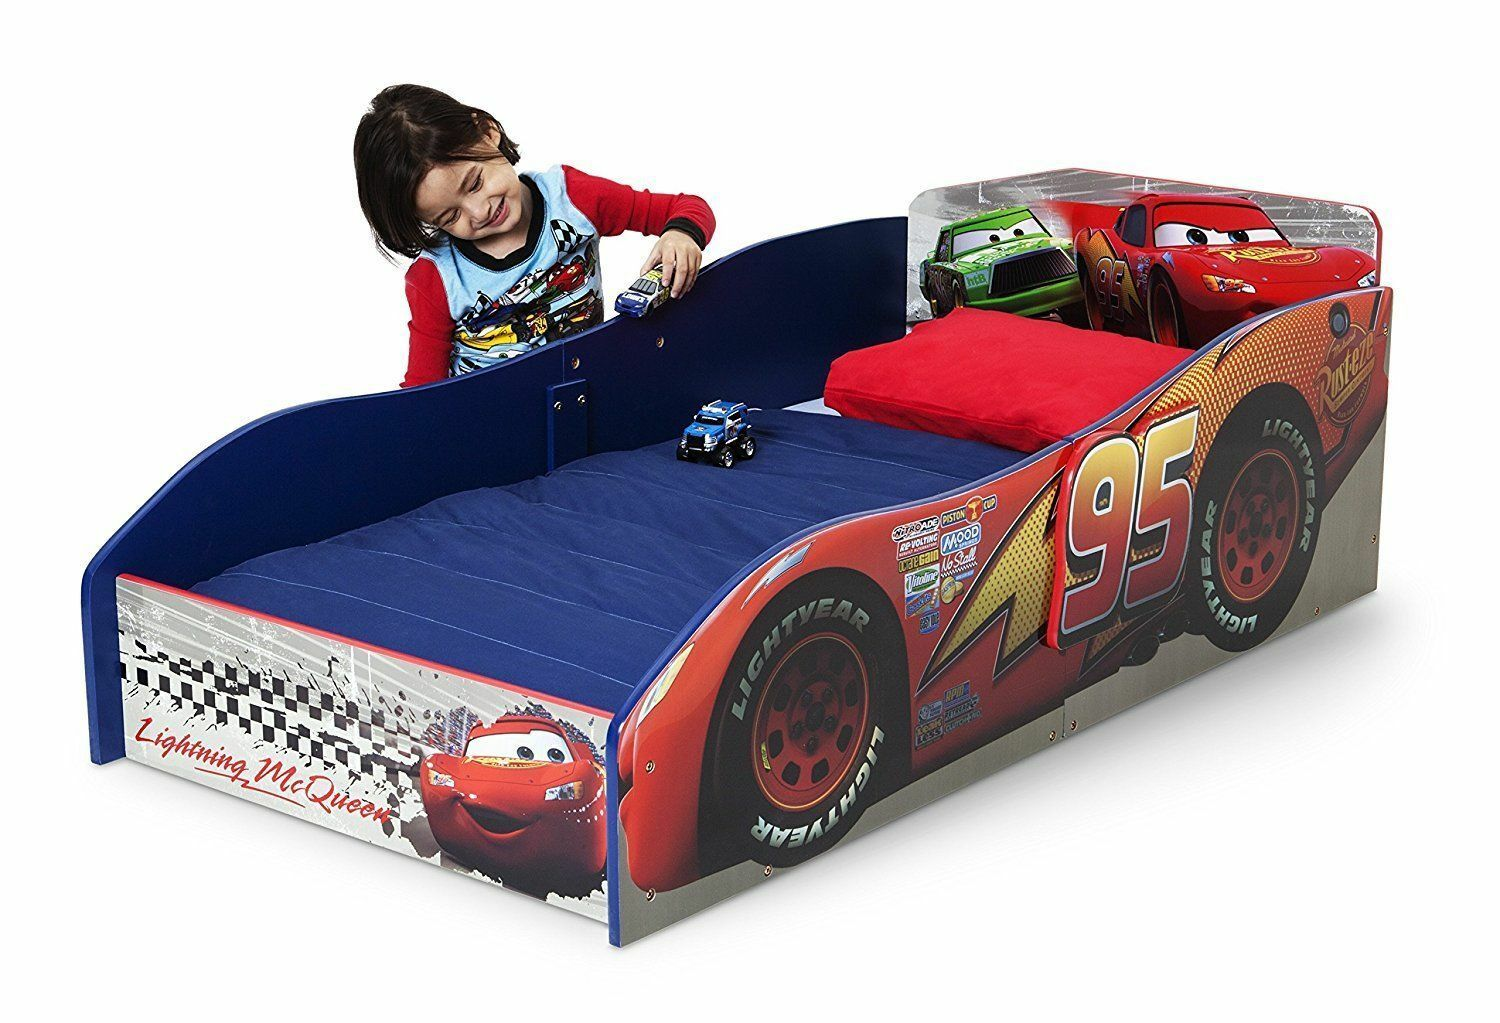 Cars Kinderbett 145 X 76 Cm Variante:cars Delta Childrens Products Disney 3d Kinderbett Lightning Mcqueen Princess Mickey Minnie Ca Baby Novocorefloor Baby- & Kleinkindbetten